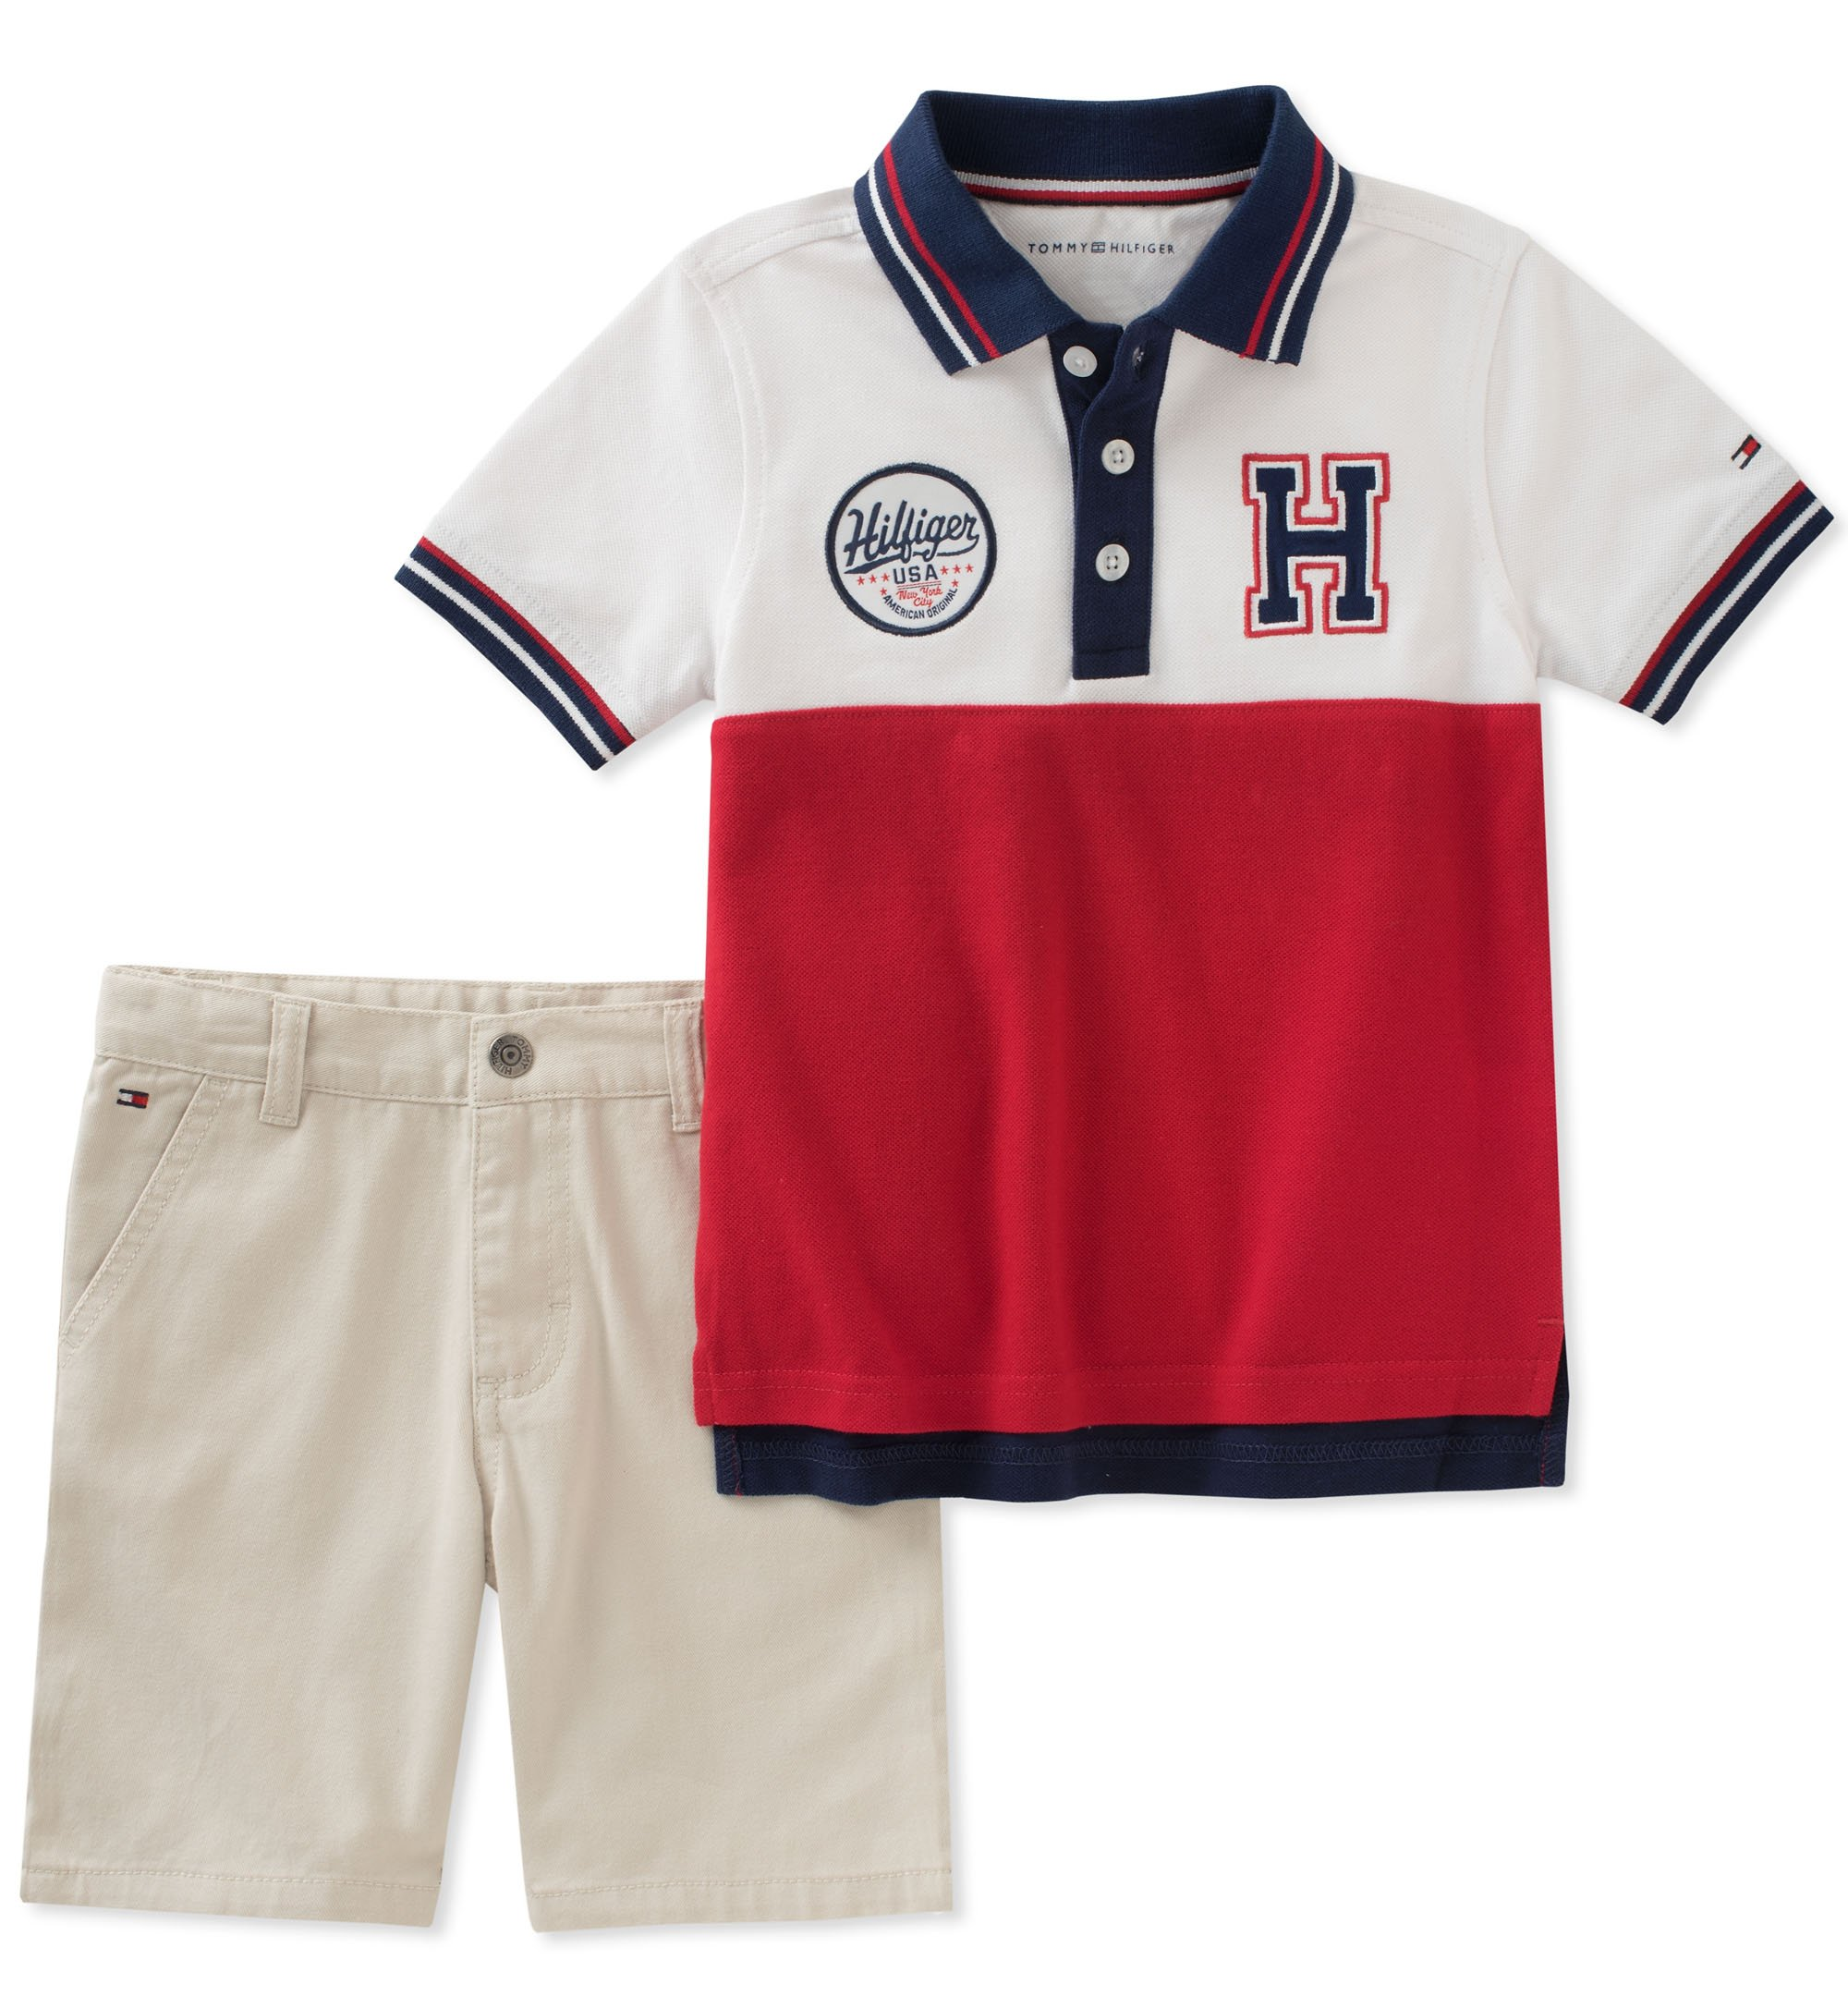 Tommy Hilfiger Boys' Toddler 2 Pieces Polo Shorts Set, red/White, 2T